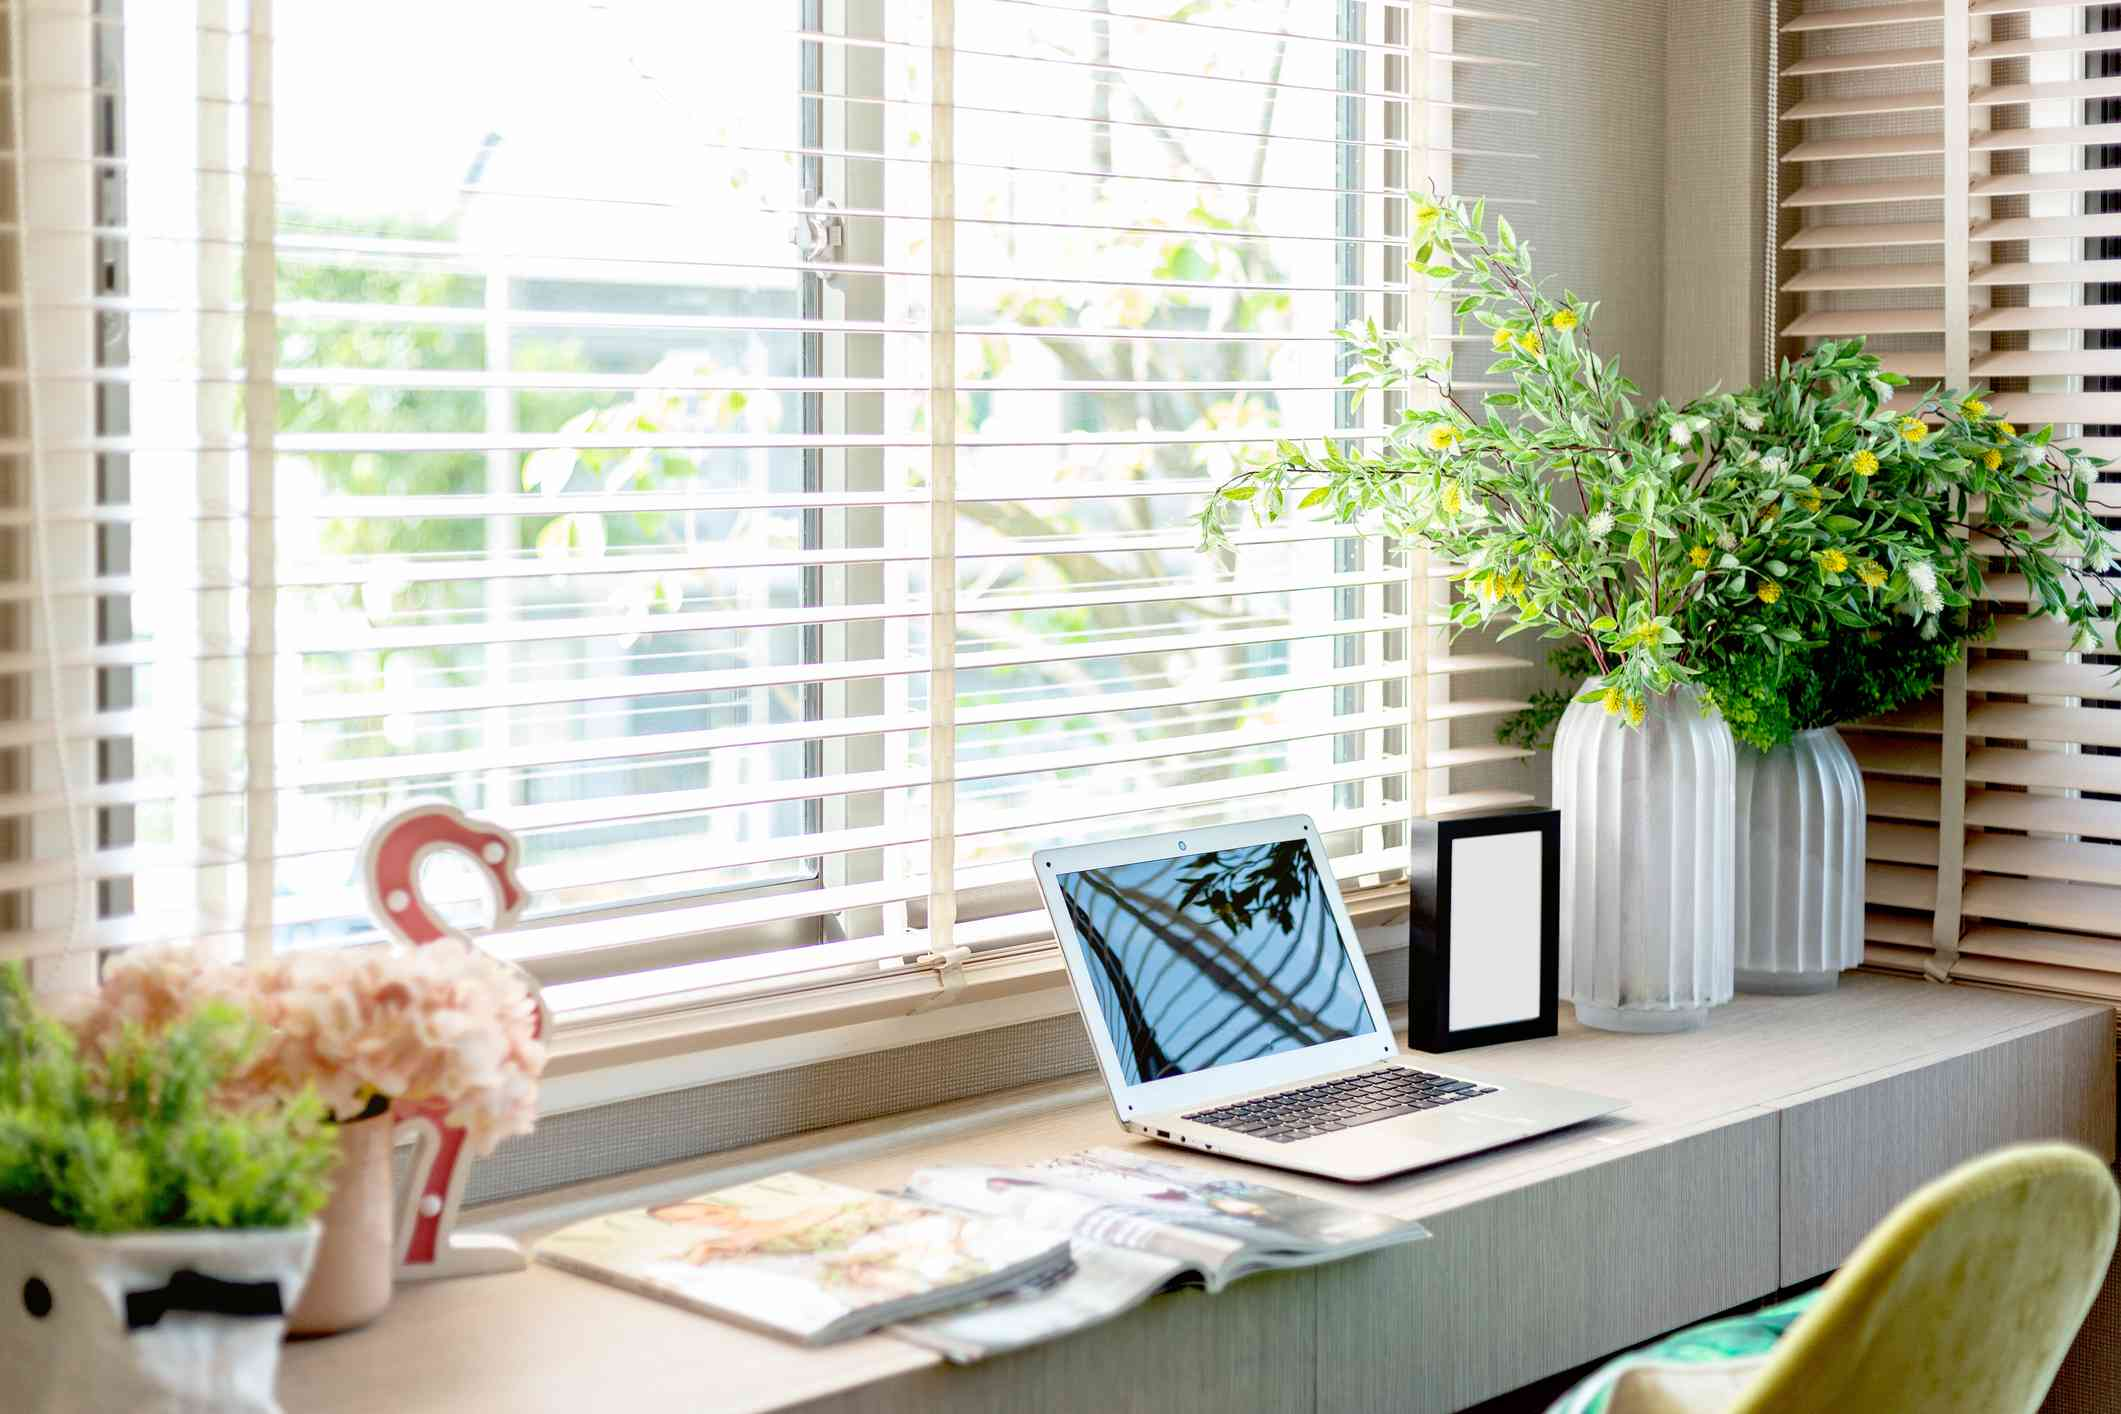 blinds in a home office